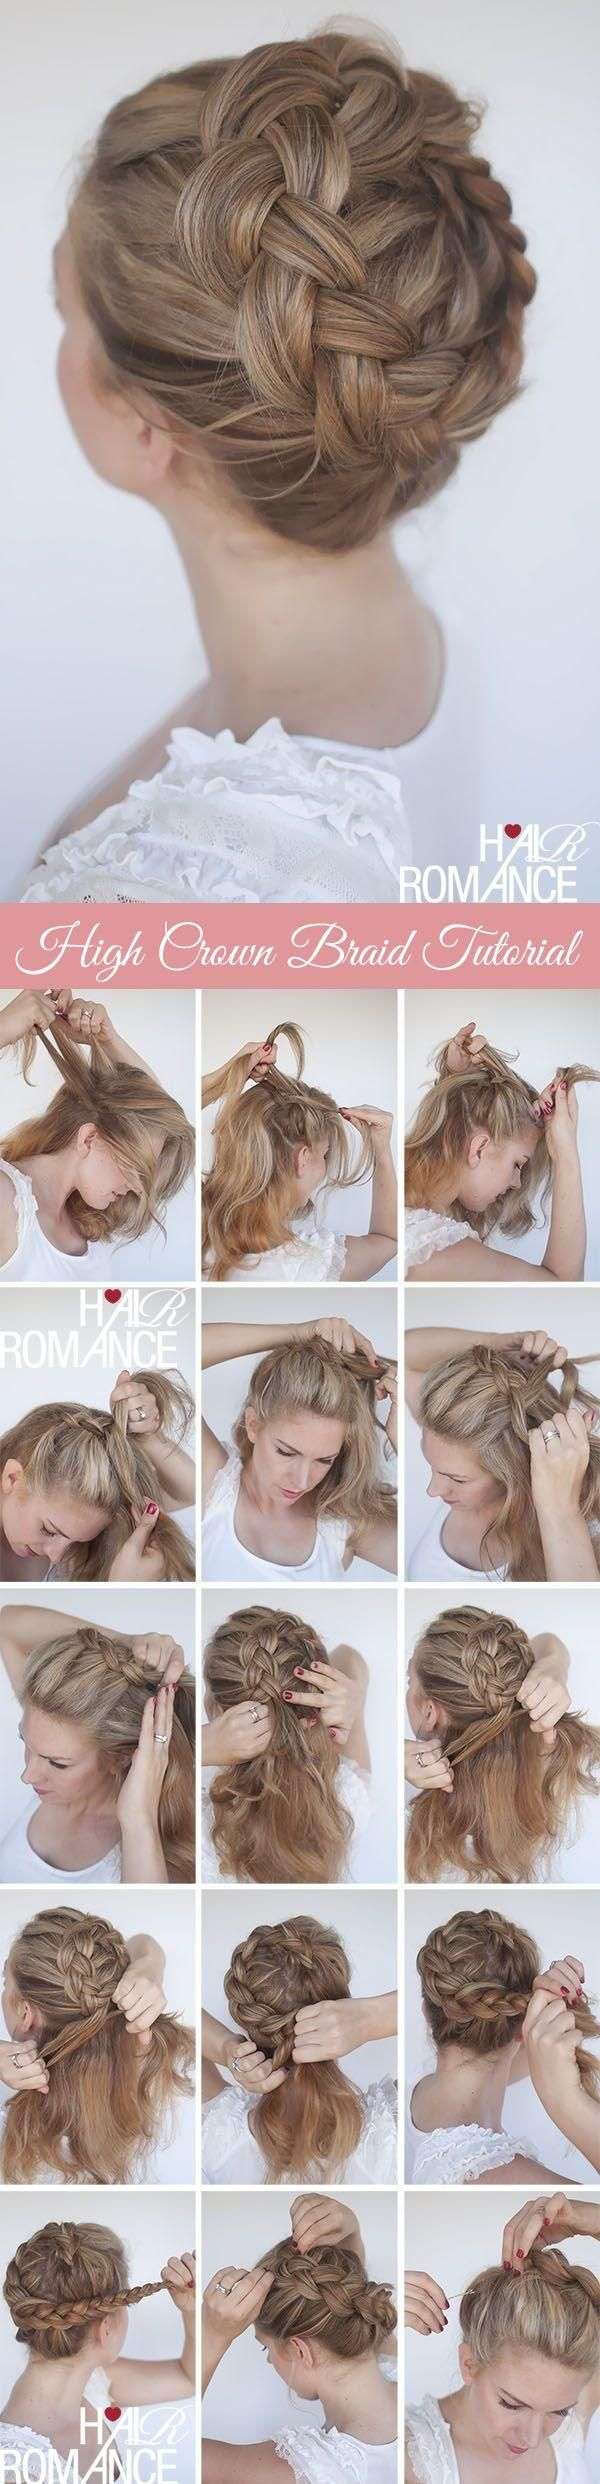 Braided-Hairstyle Hair Tutorials to Style Your Hair